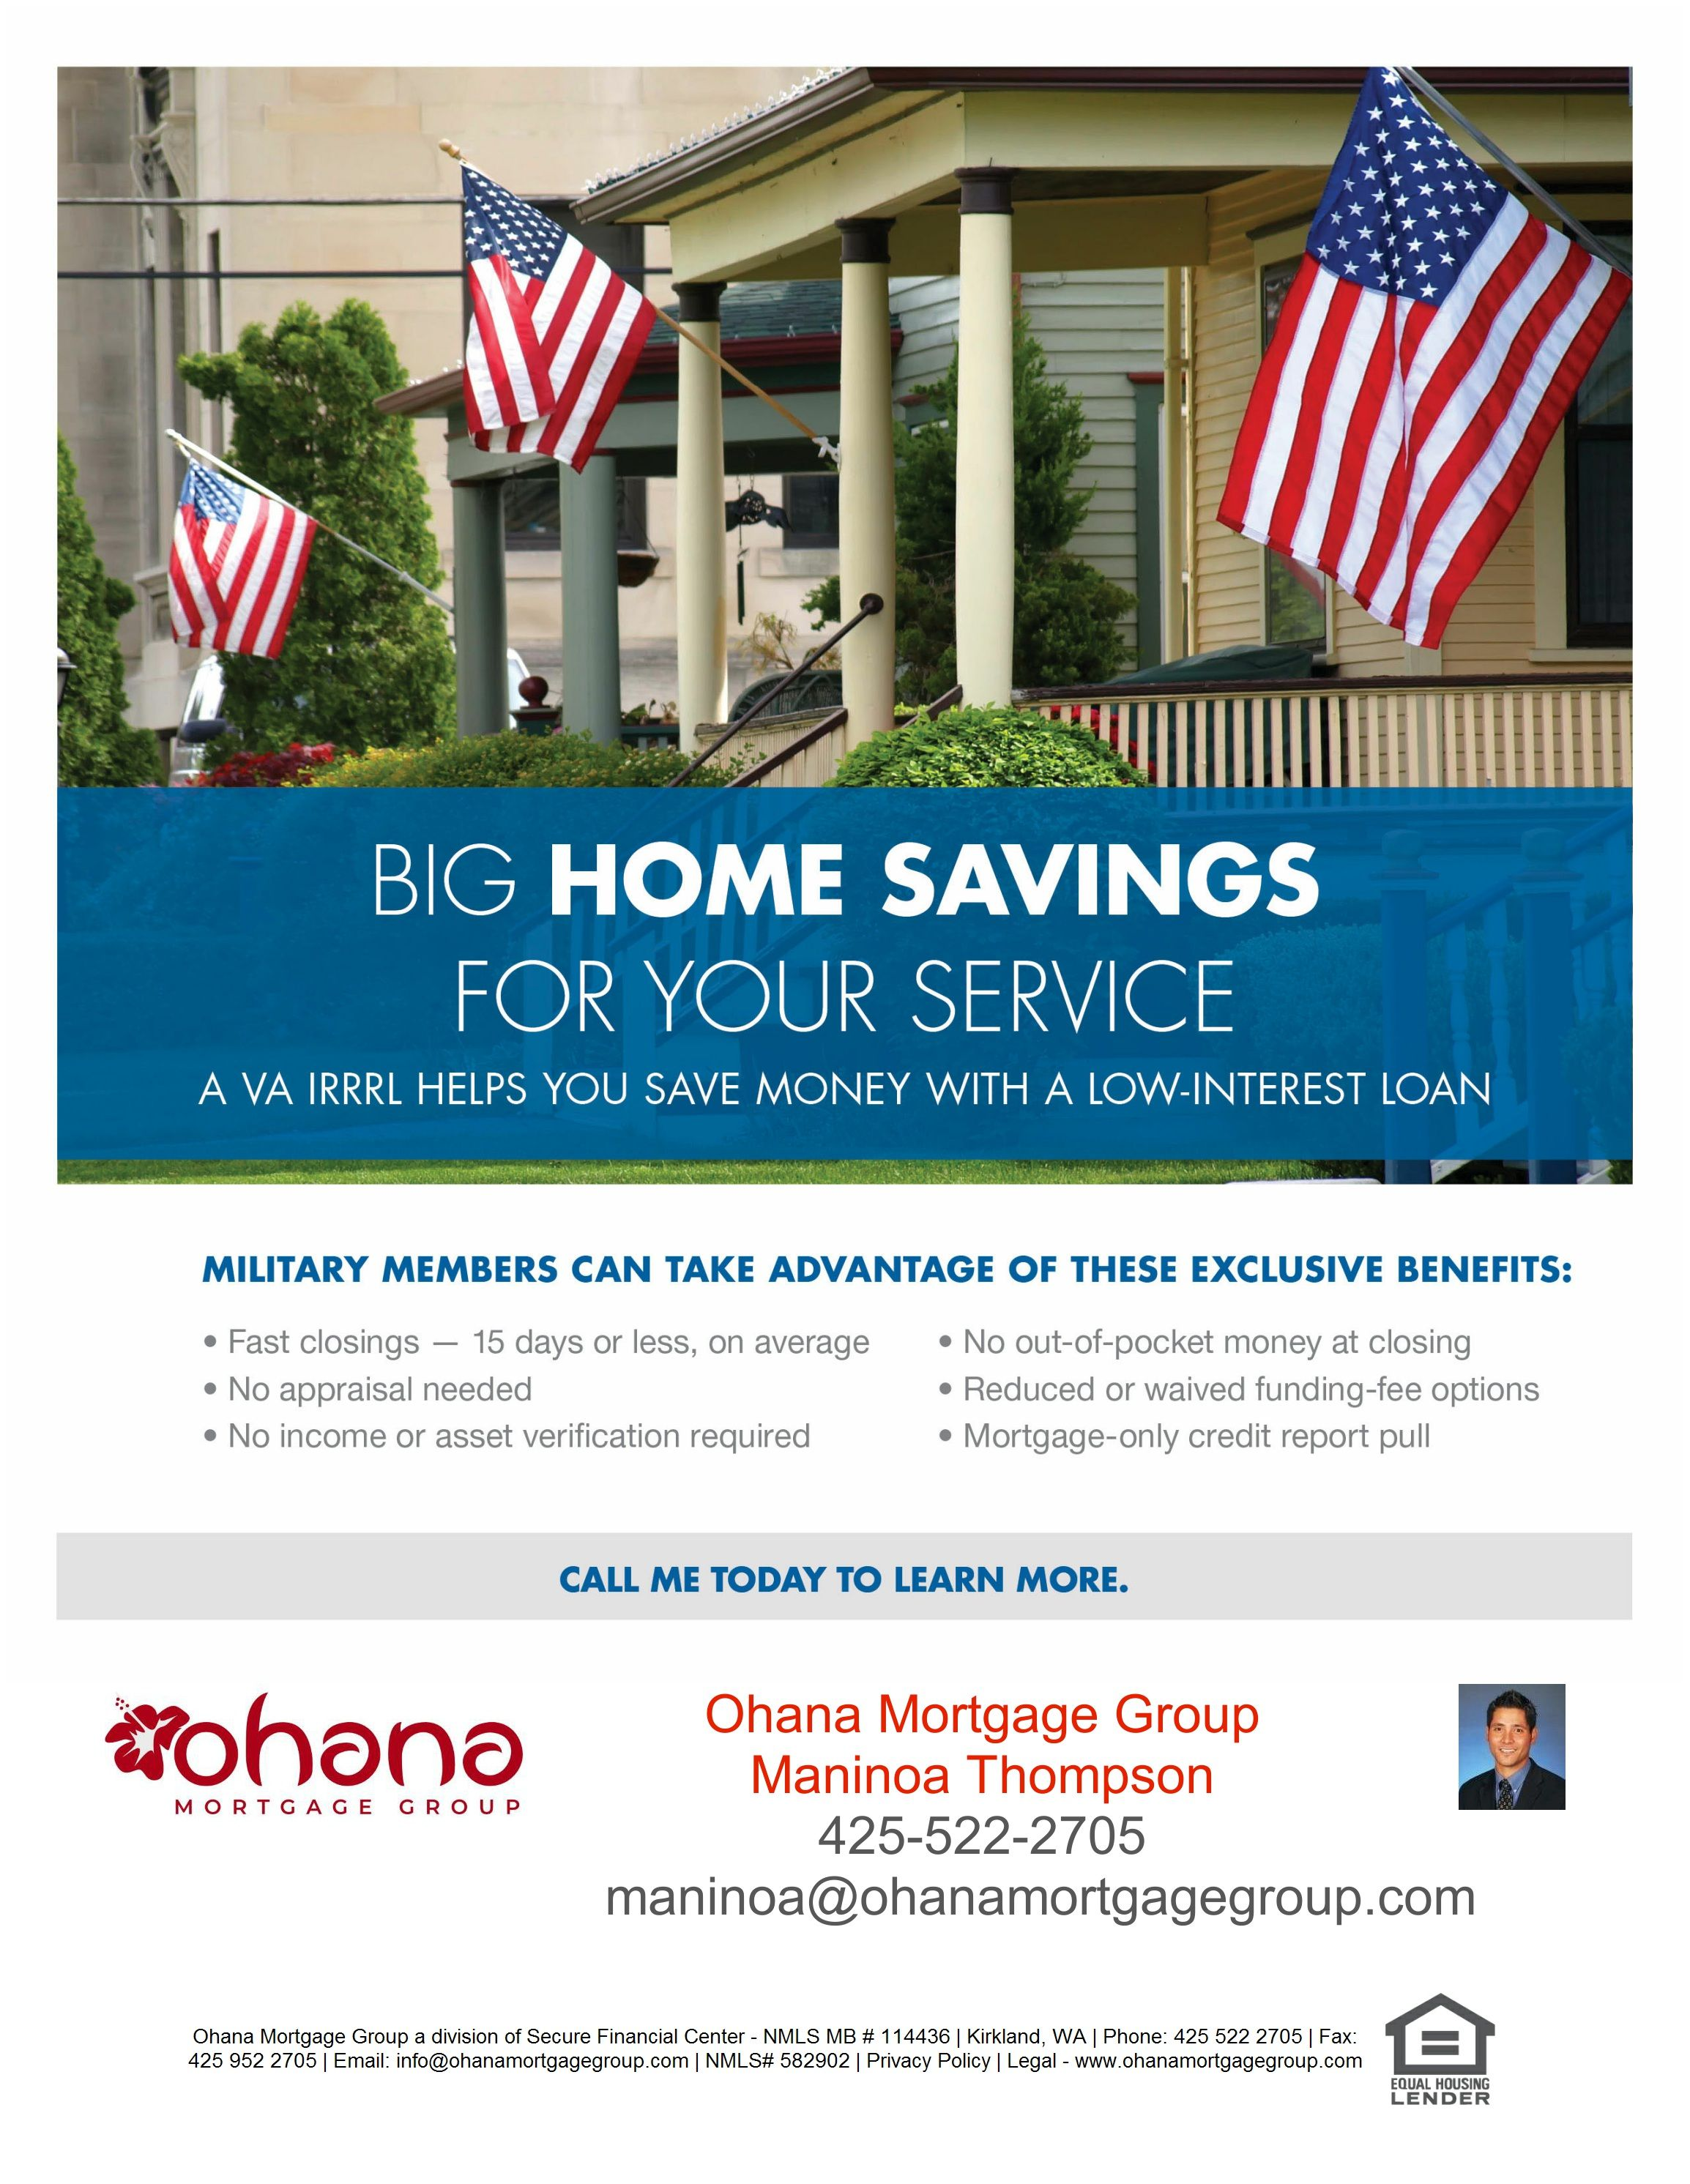 Va Home Loan Benefits Home Loans Loan Lowest Mortgage Rates